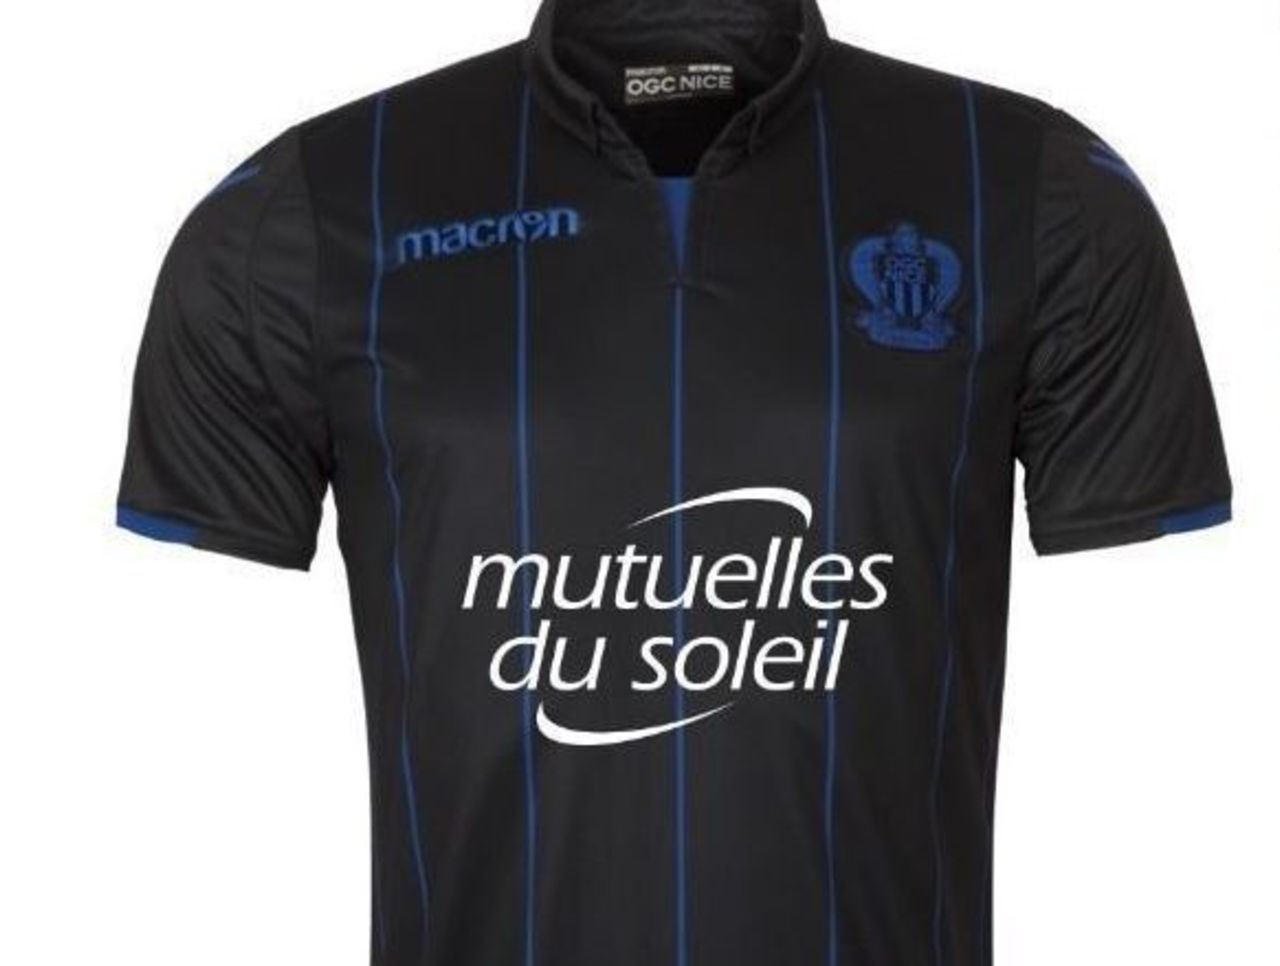 ... Nice s third kit is an uncomplicated yet striking strip that ll look as  sharp on the Cote d Azur beauty s rocky beaches as it will on the Allianz  ... 4ca68454b